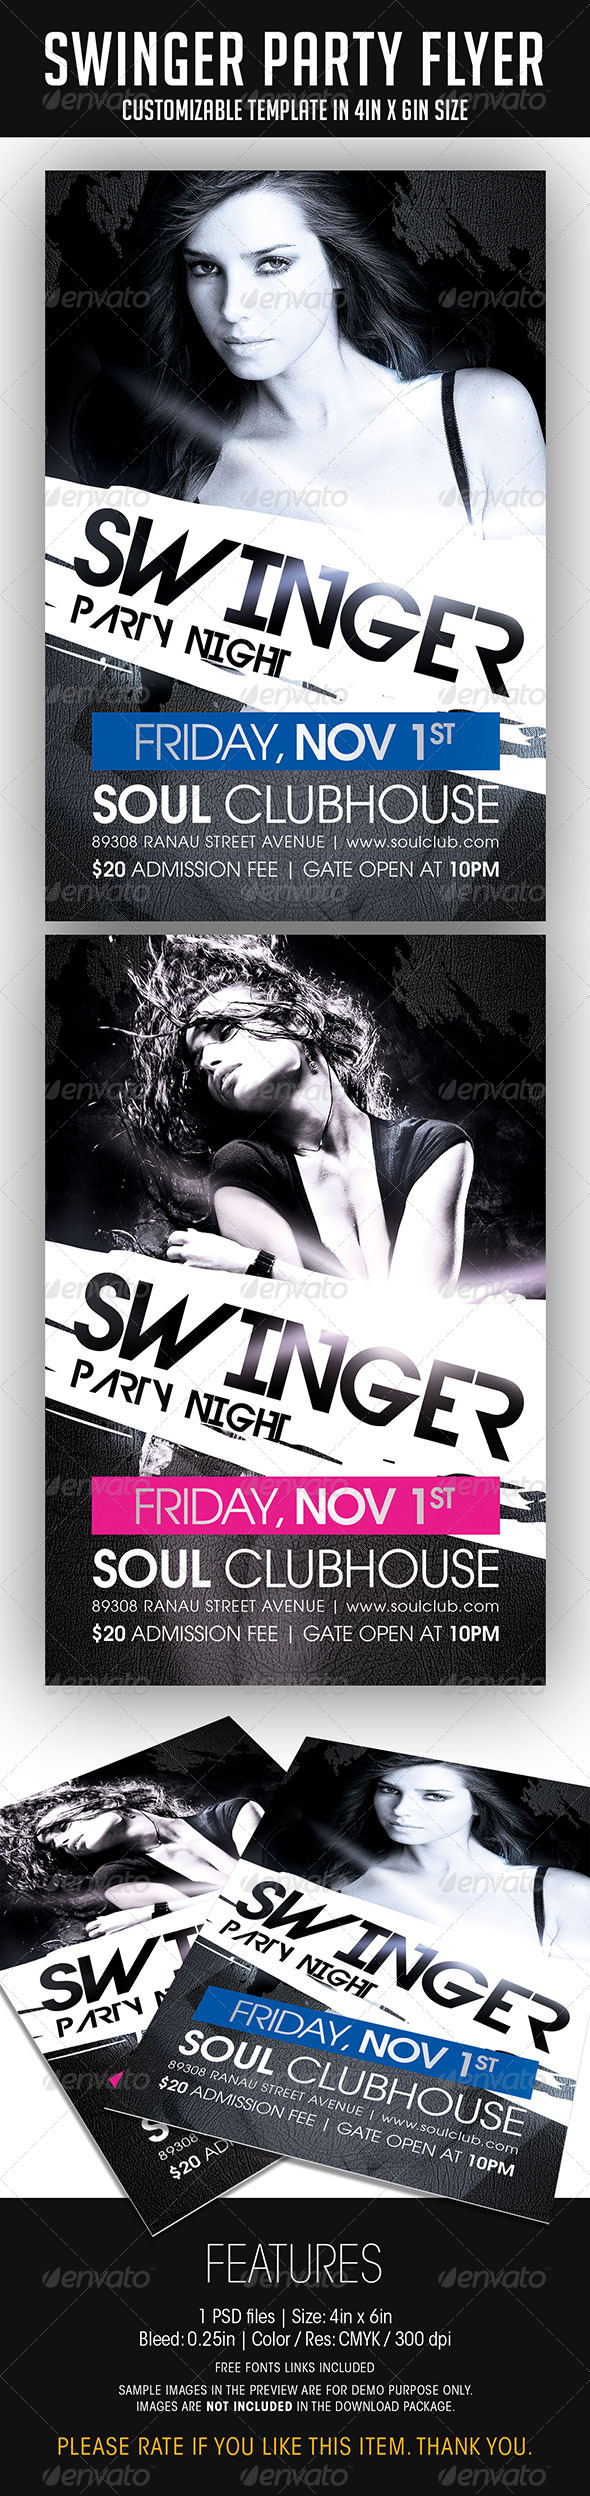 Swinger Party Flyer - Clubs & Parties Events